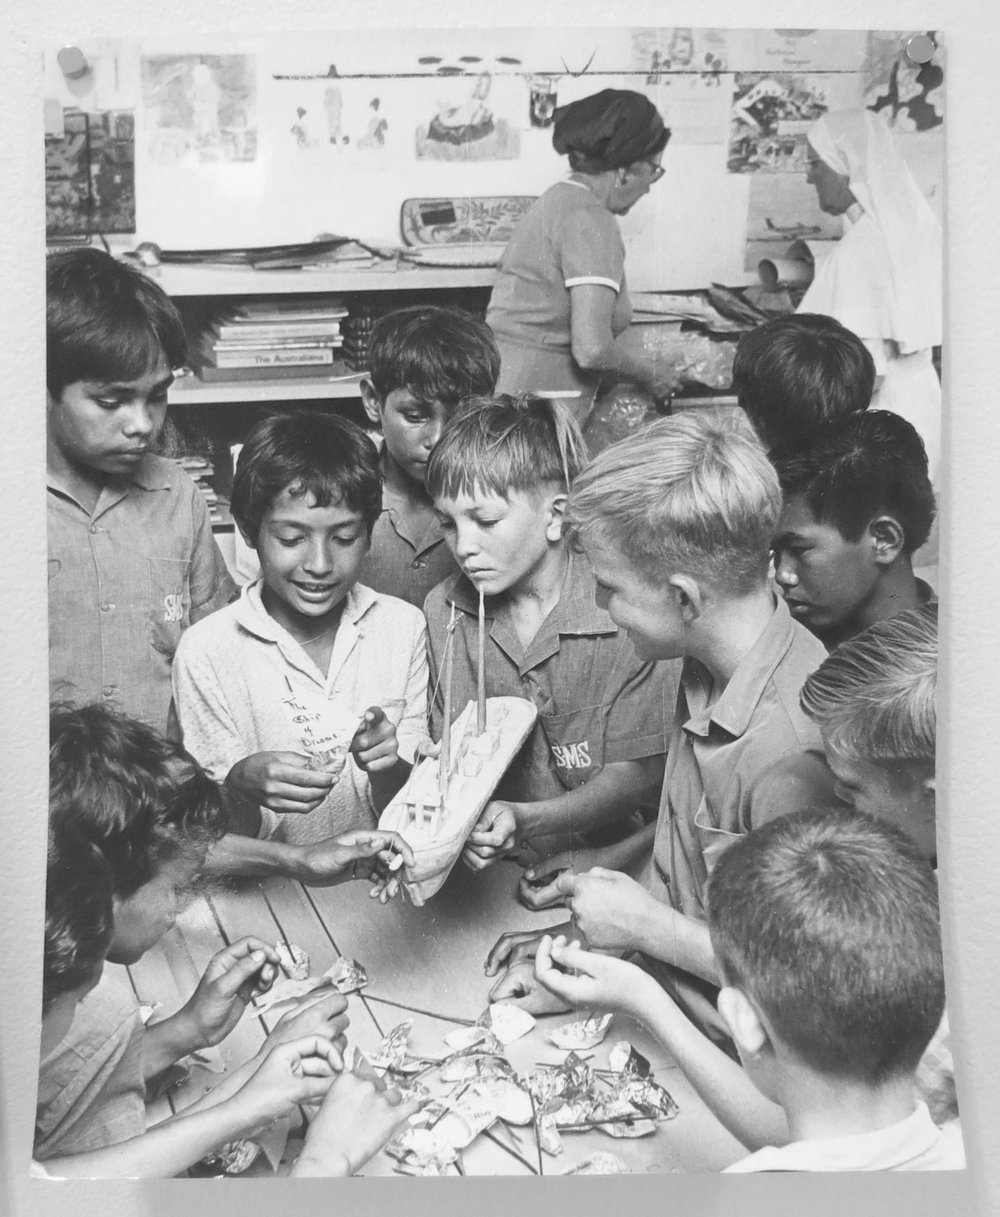 80. Richard Woldendorp, 'Convent school boys making boats for 'Ship of Dreams' performance with Mary Durack, Broome WA', taken and printed in 1968, Vintage Print